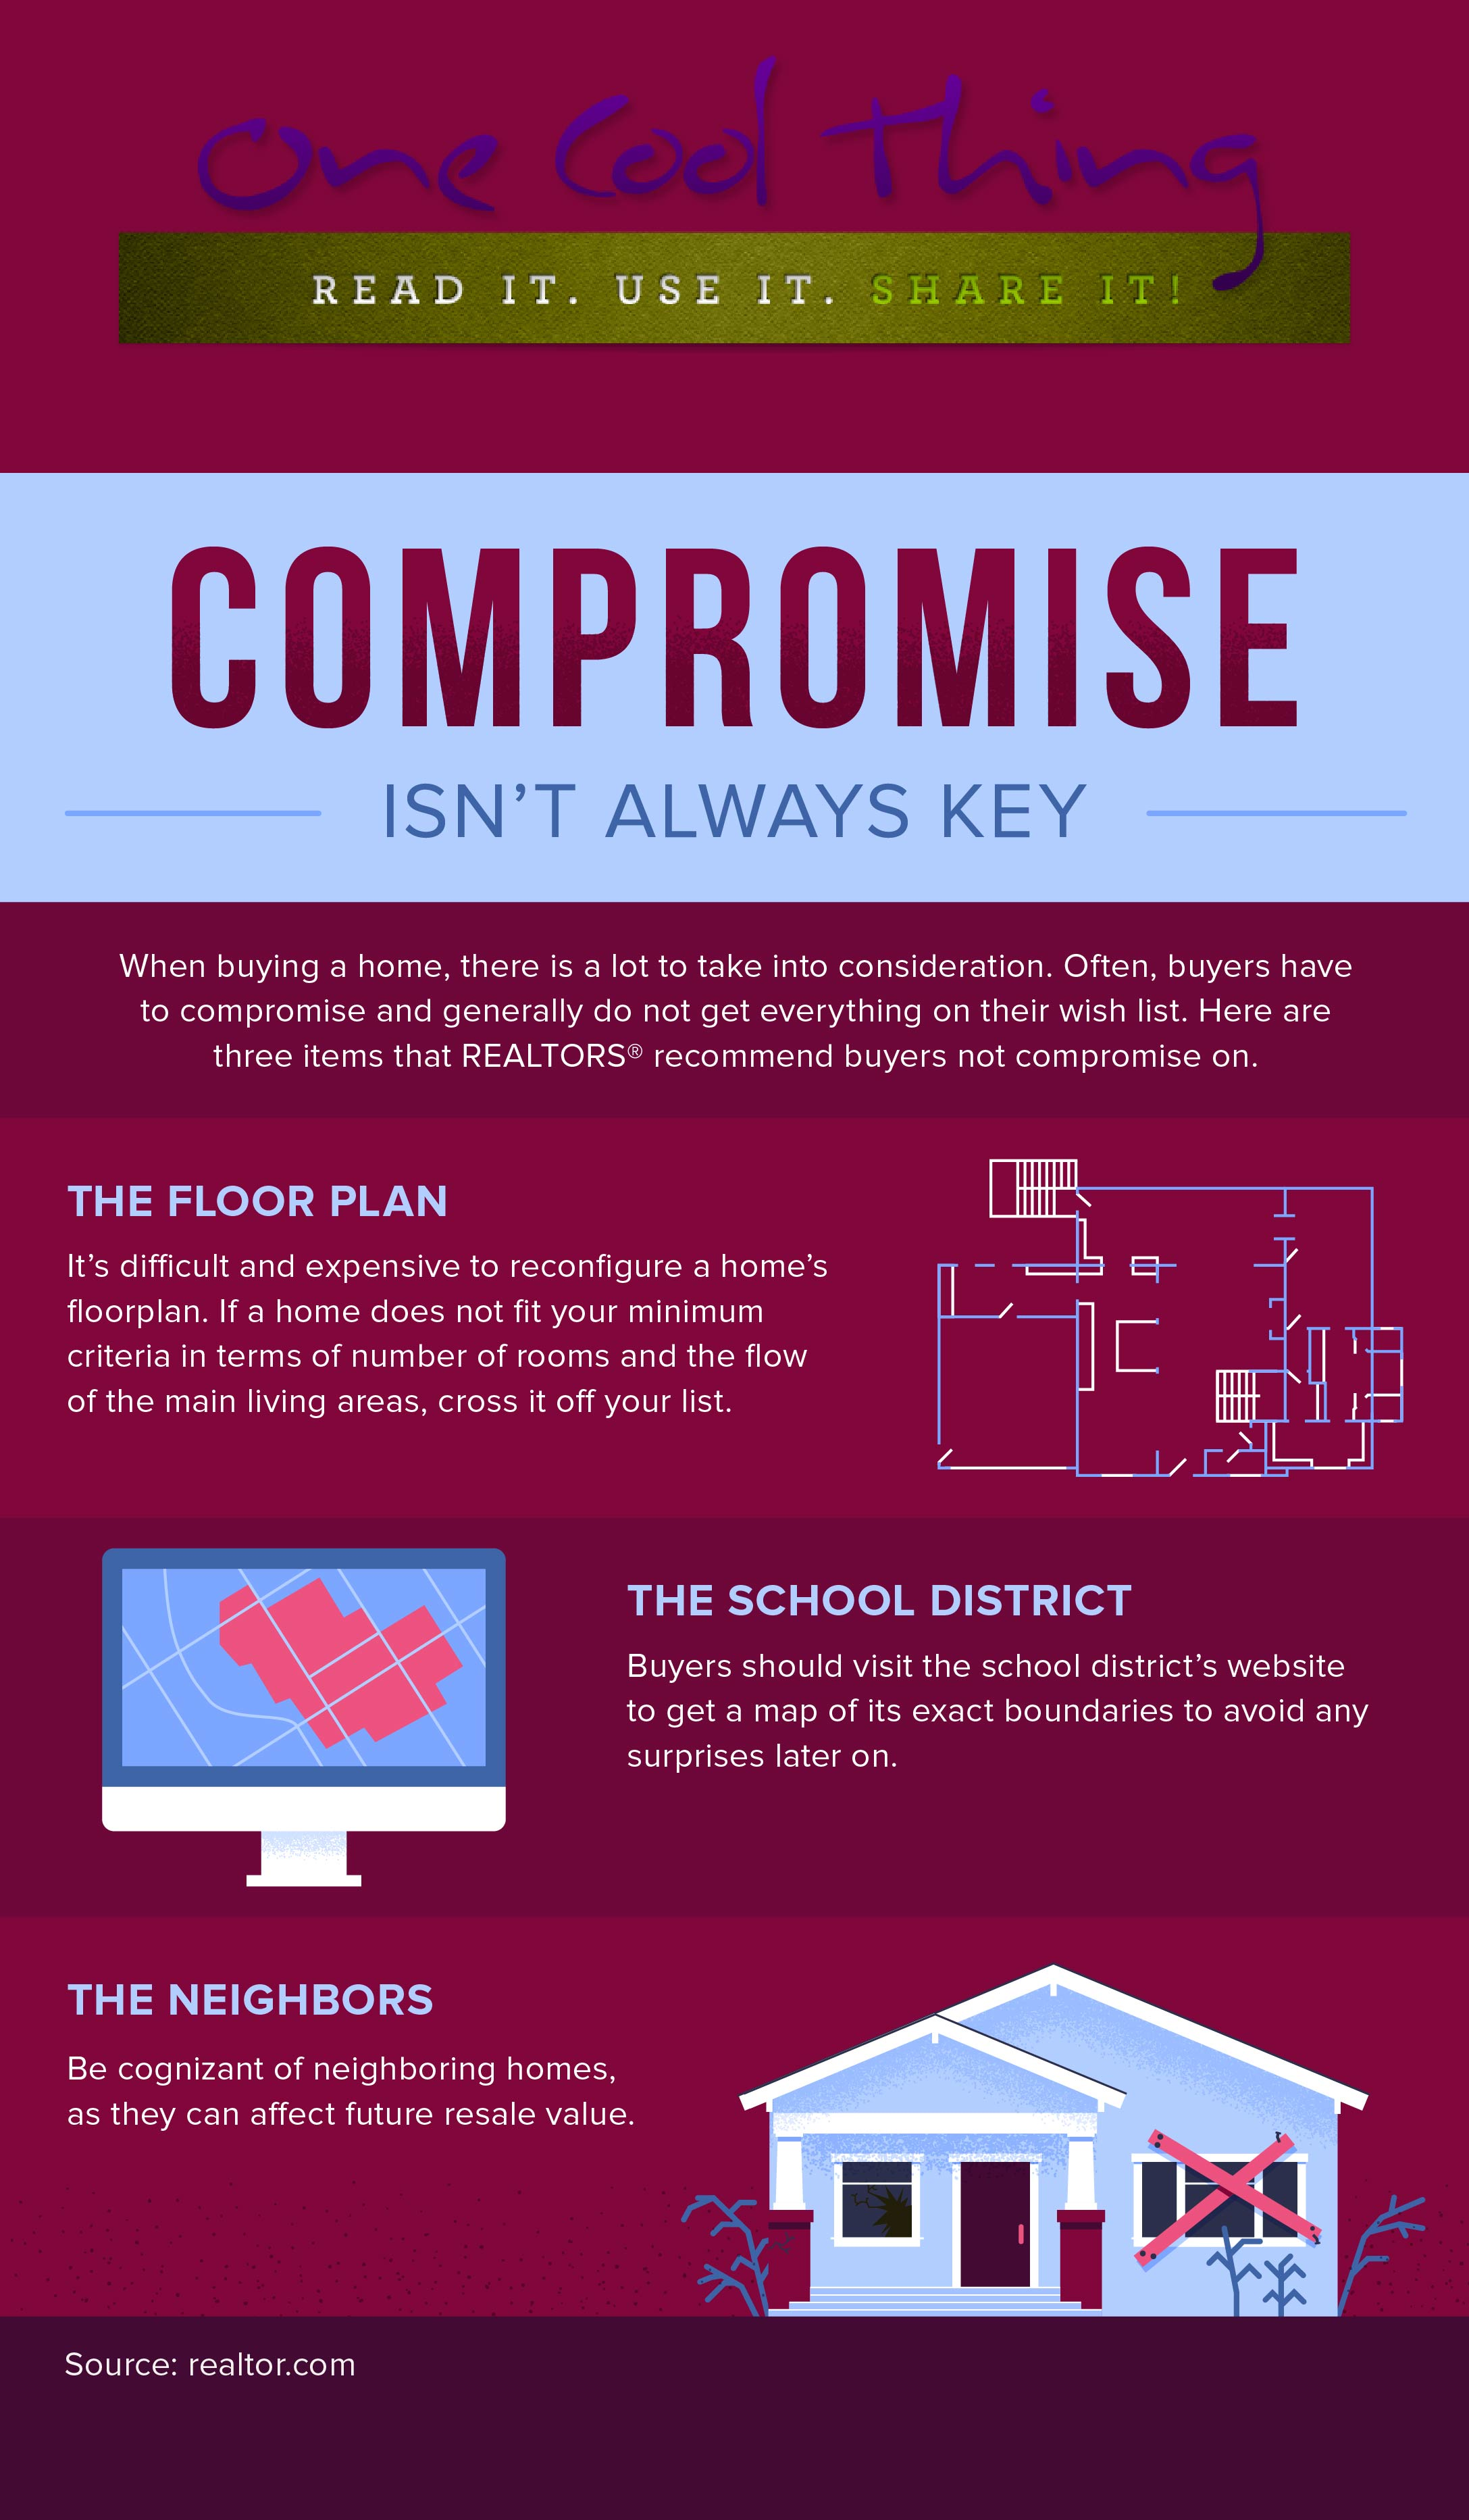 Why is it important to compromise